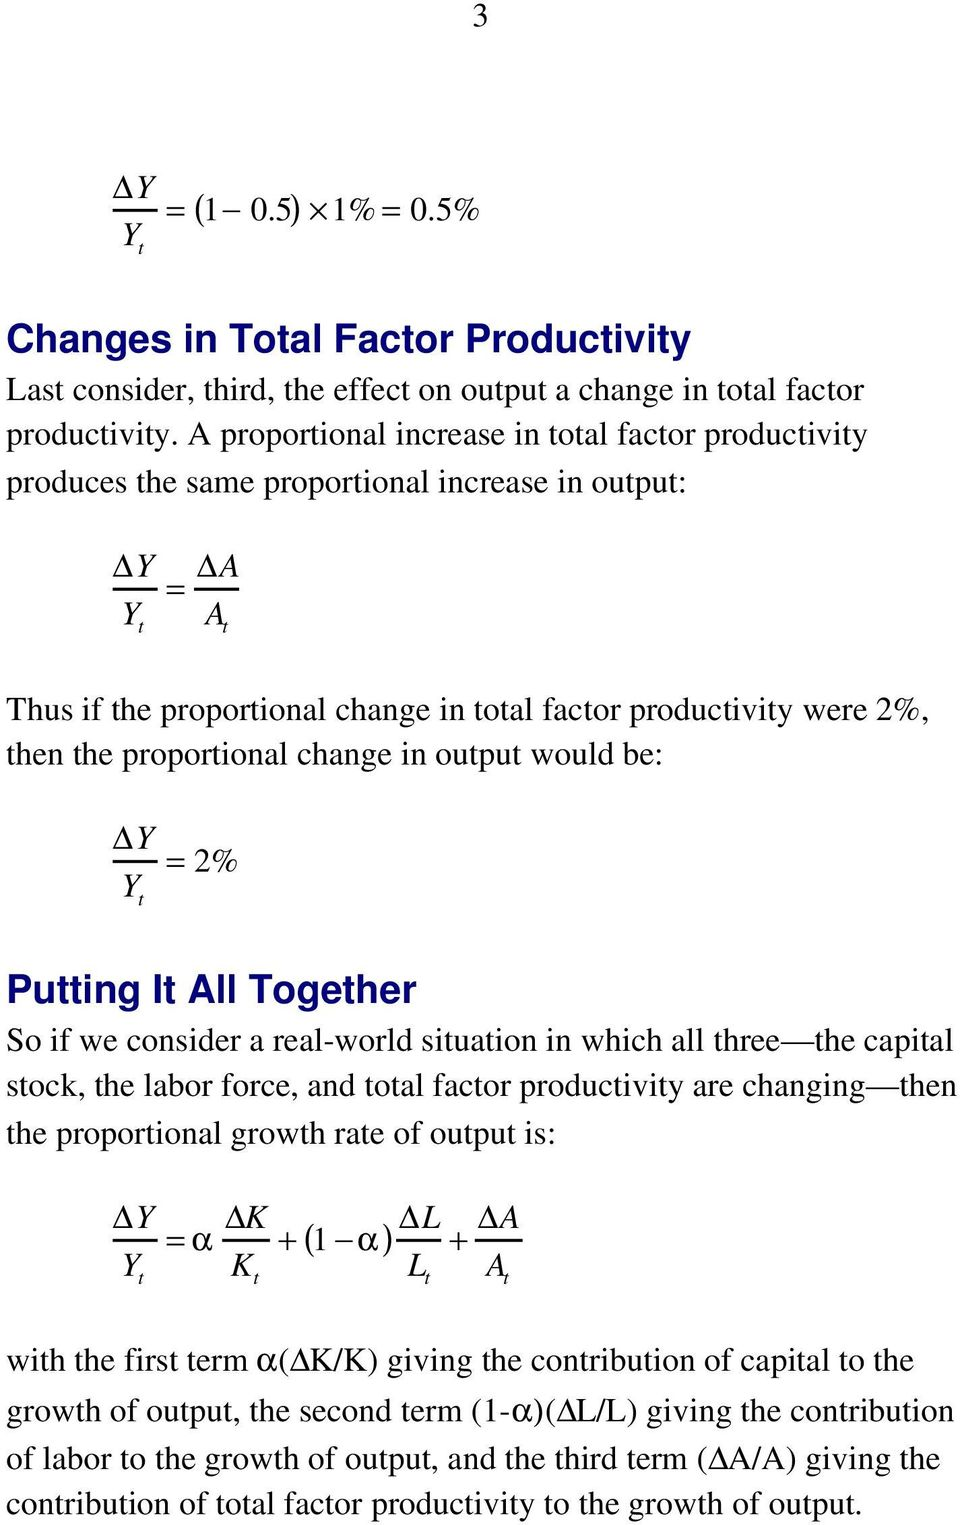 proportional change in output would be: = 2% Putting It All Together So if we consider a real-world situation in which all three the capital stock, the labor force, and total factor productivity are